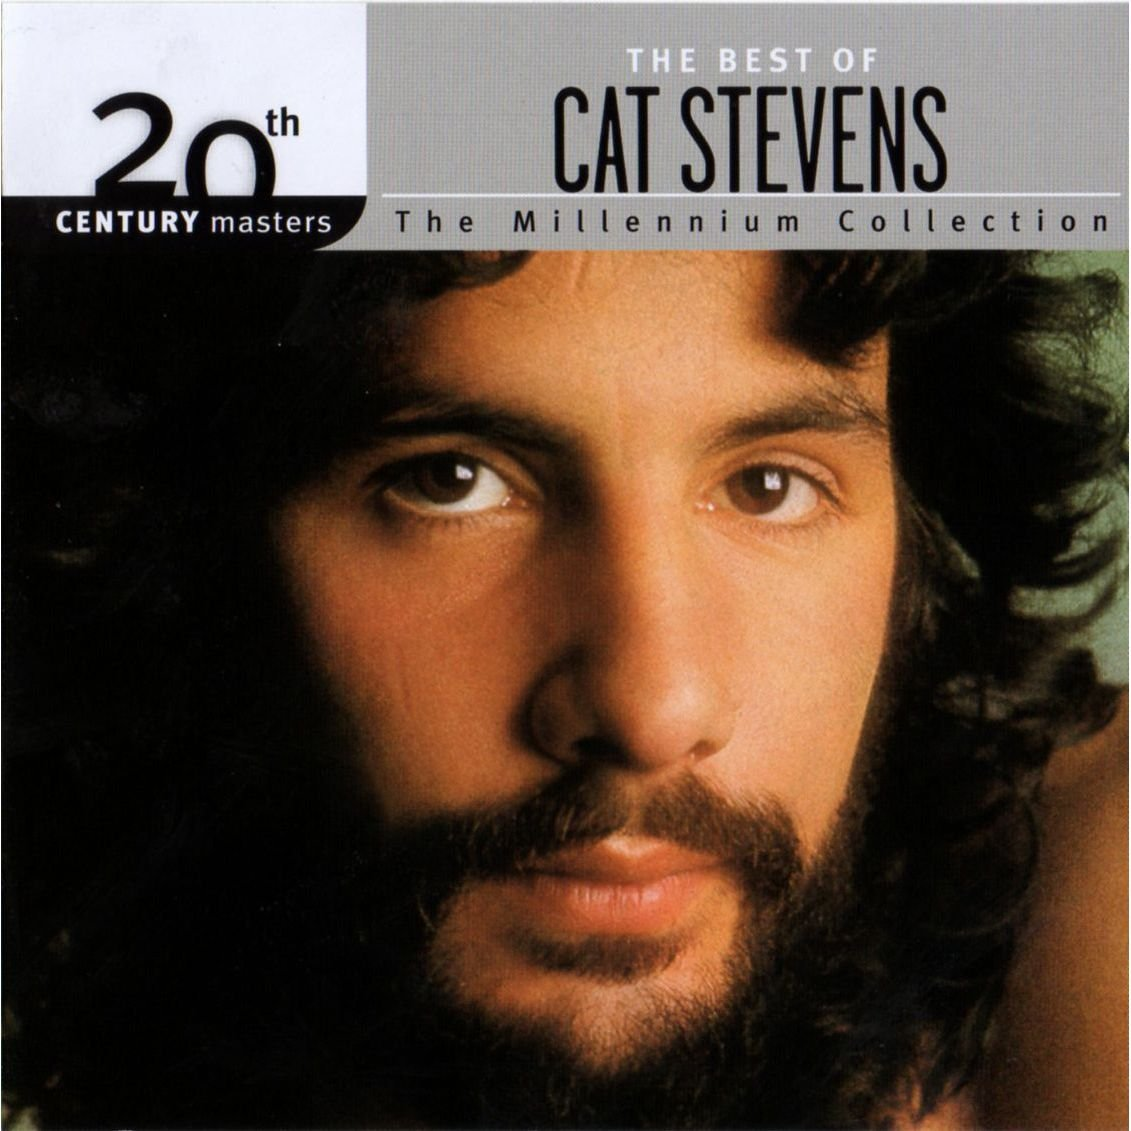 What Is The Name Of The New Cat Stevens Album